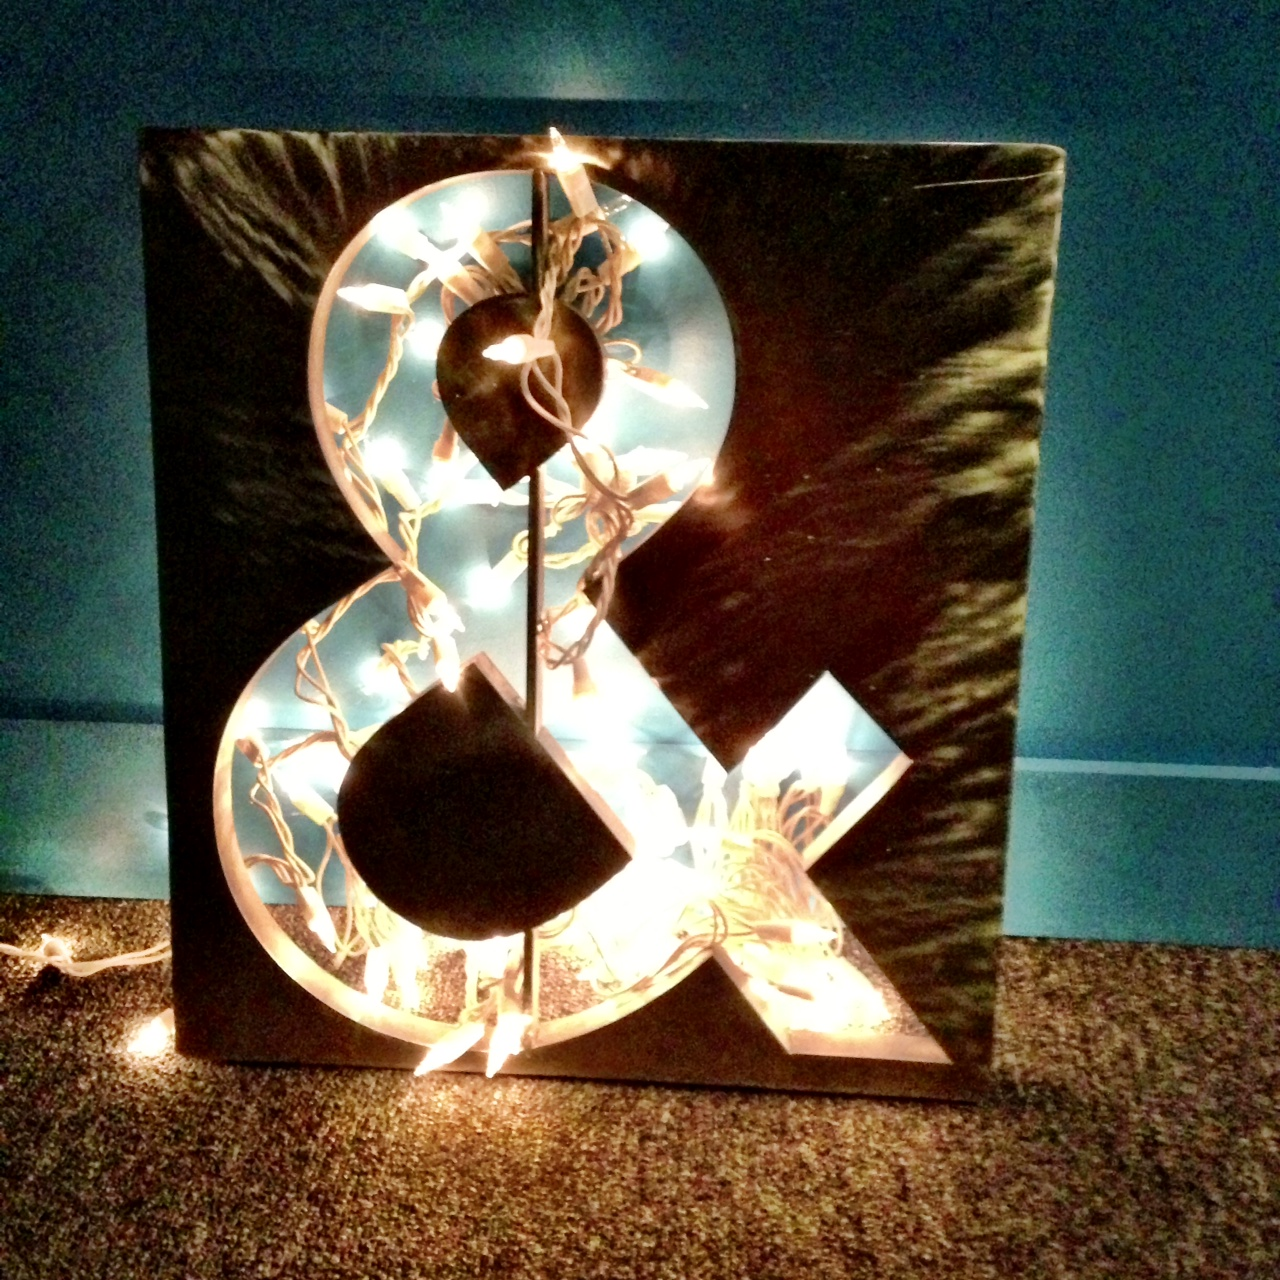 an ampersand decorated with lights